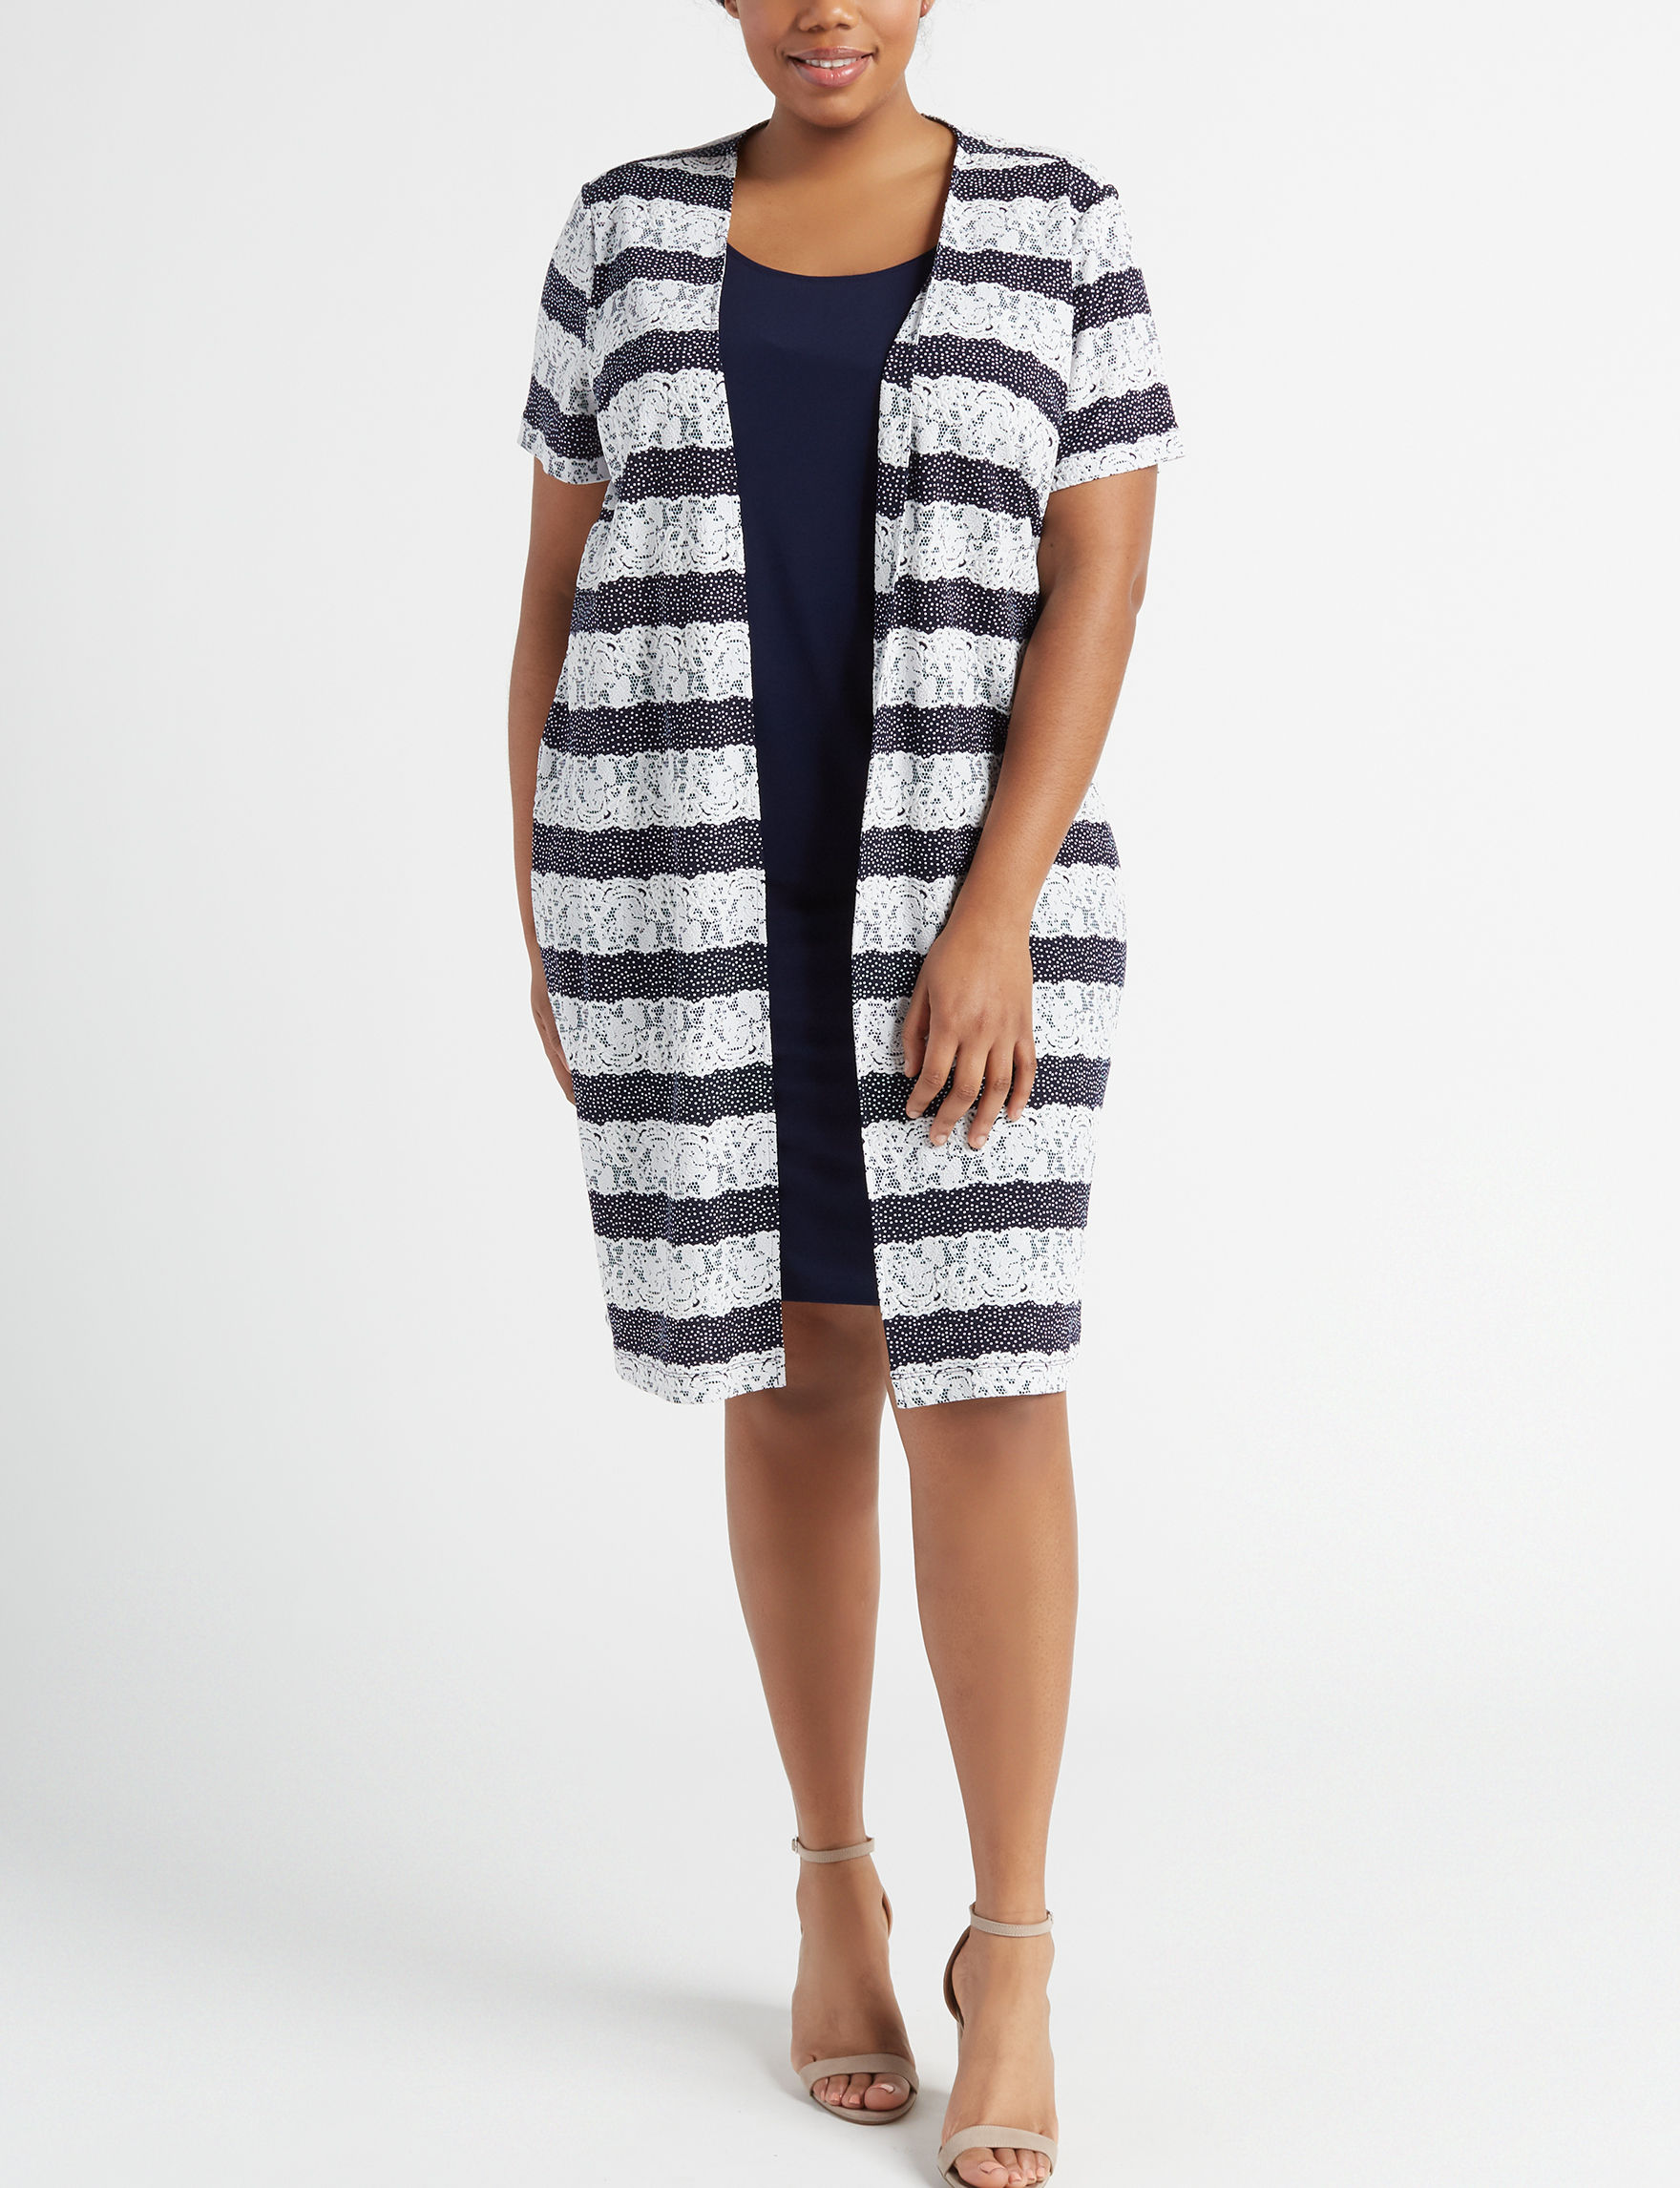 Perceptions Navy / Ivory Everyday & Casual Jacket Dresses